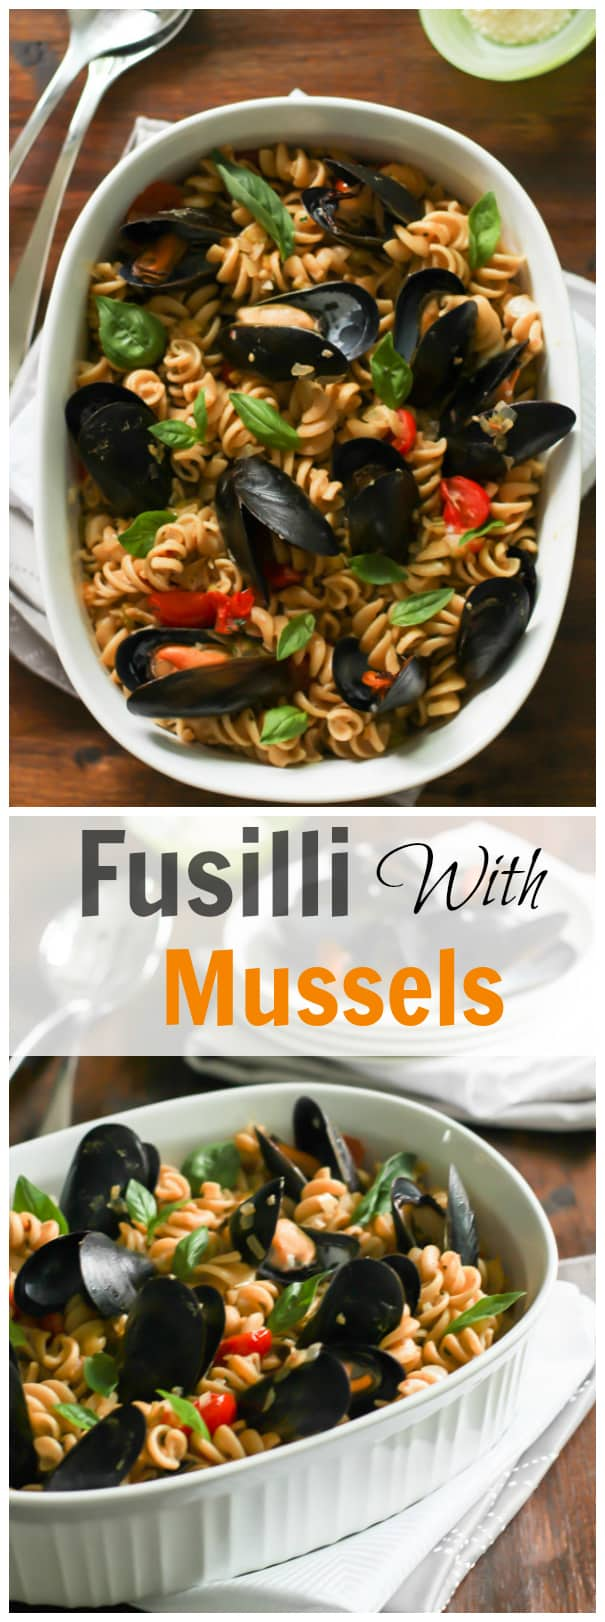 Fusilli with Mussels